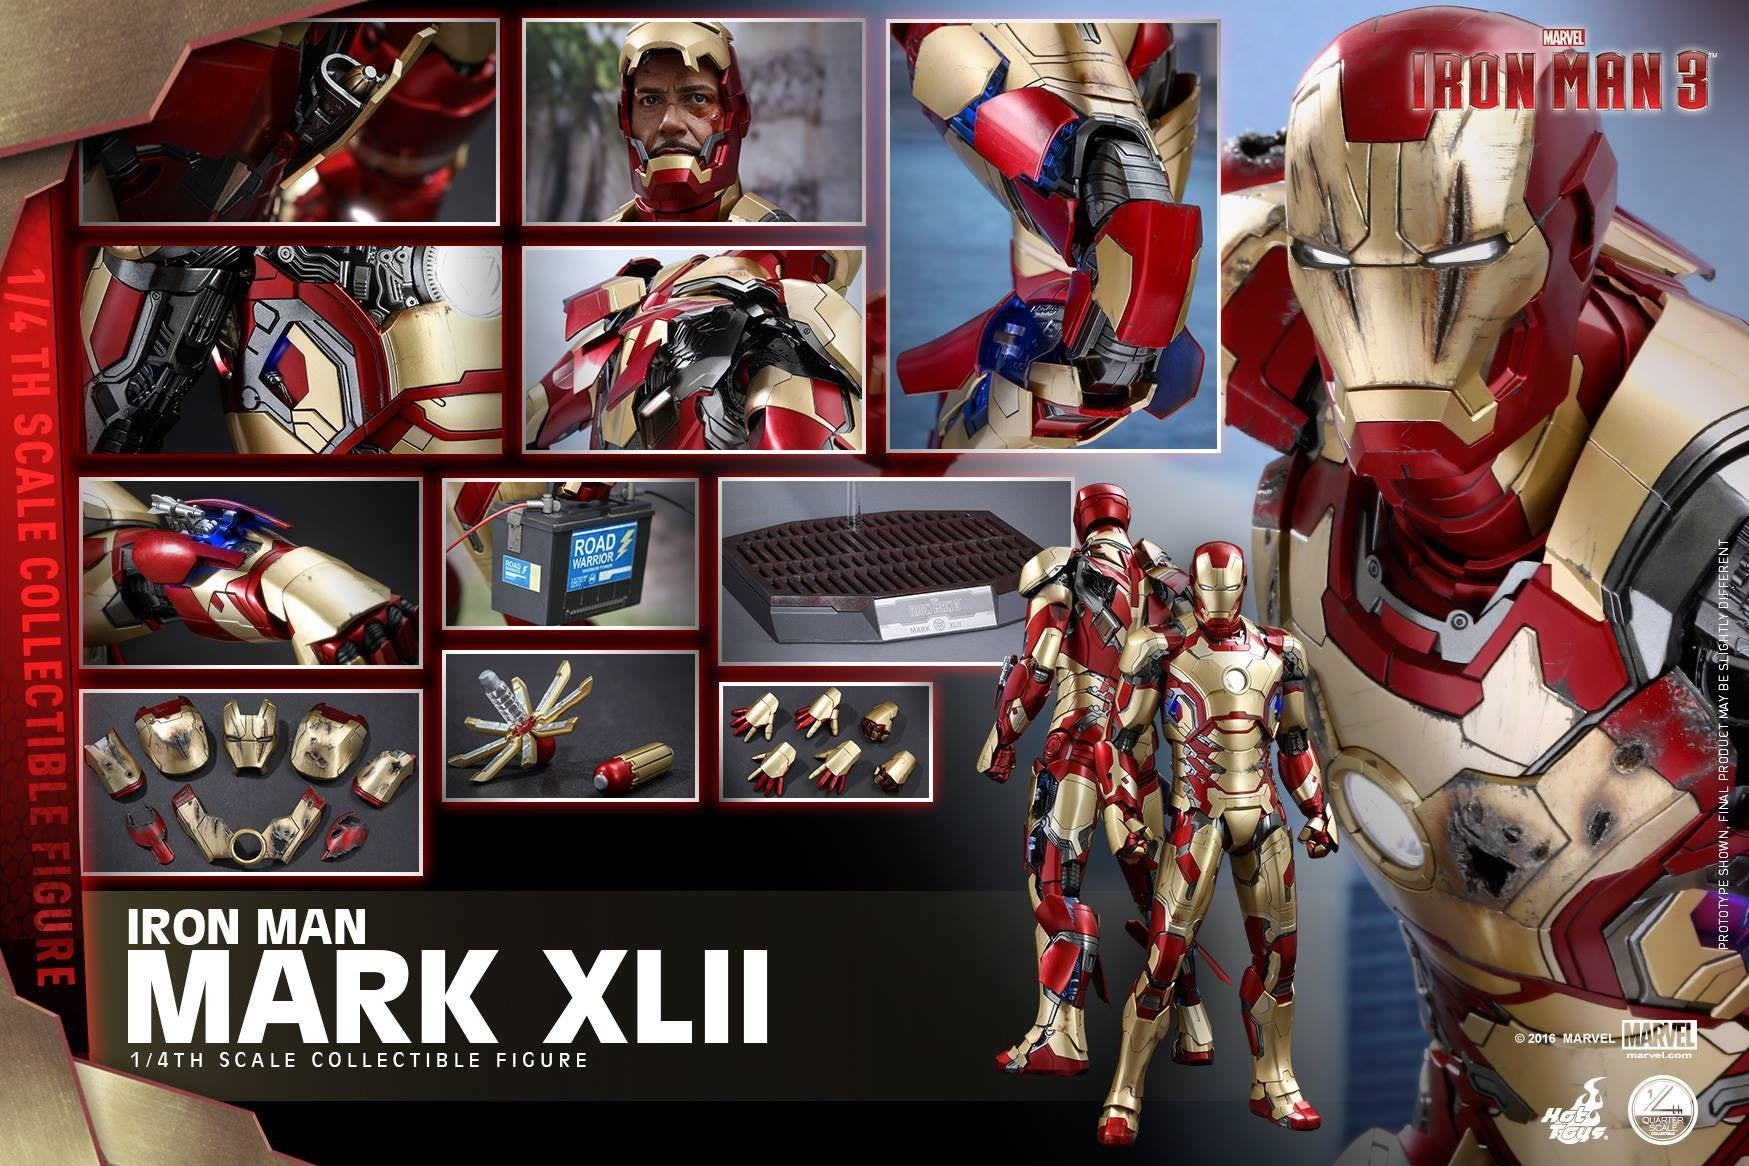 Hot Toys - QS007 - Iron Man 3 - 1/4th scale Mark XLII - Marvelous Toys - 16